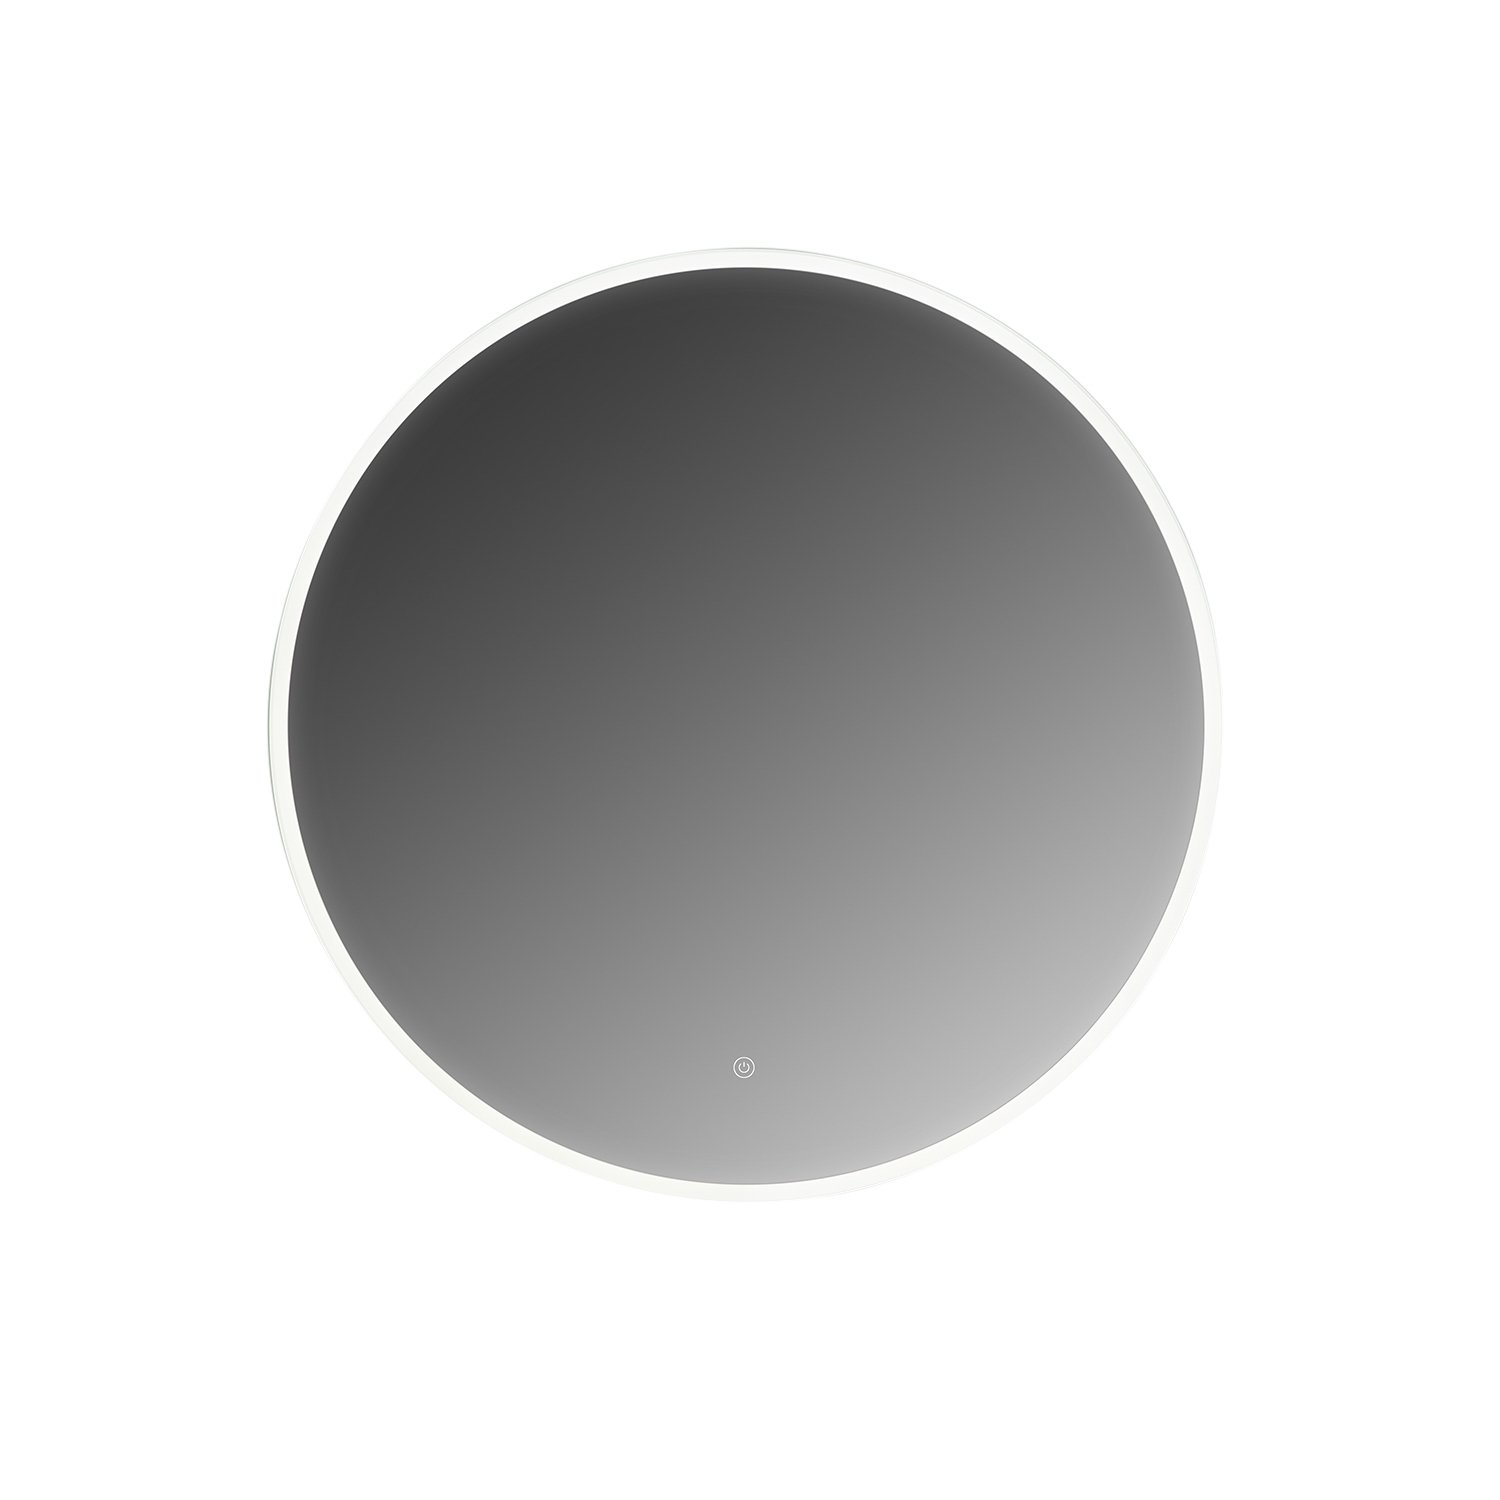 MAYKKE Olivia 32'' Round LED Mirror with Defogger, Wall Mounted Lighted Bathroom Vanity Mirror, Frameless Mirror for Wall Decor, Mirror with LED Lighting Border UL Certified, LMA1053201 by Maykke